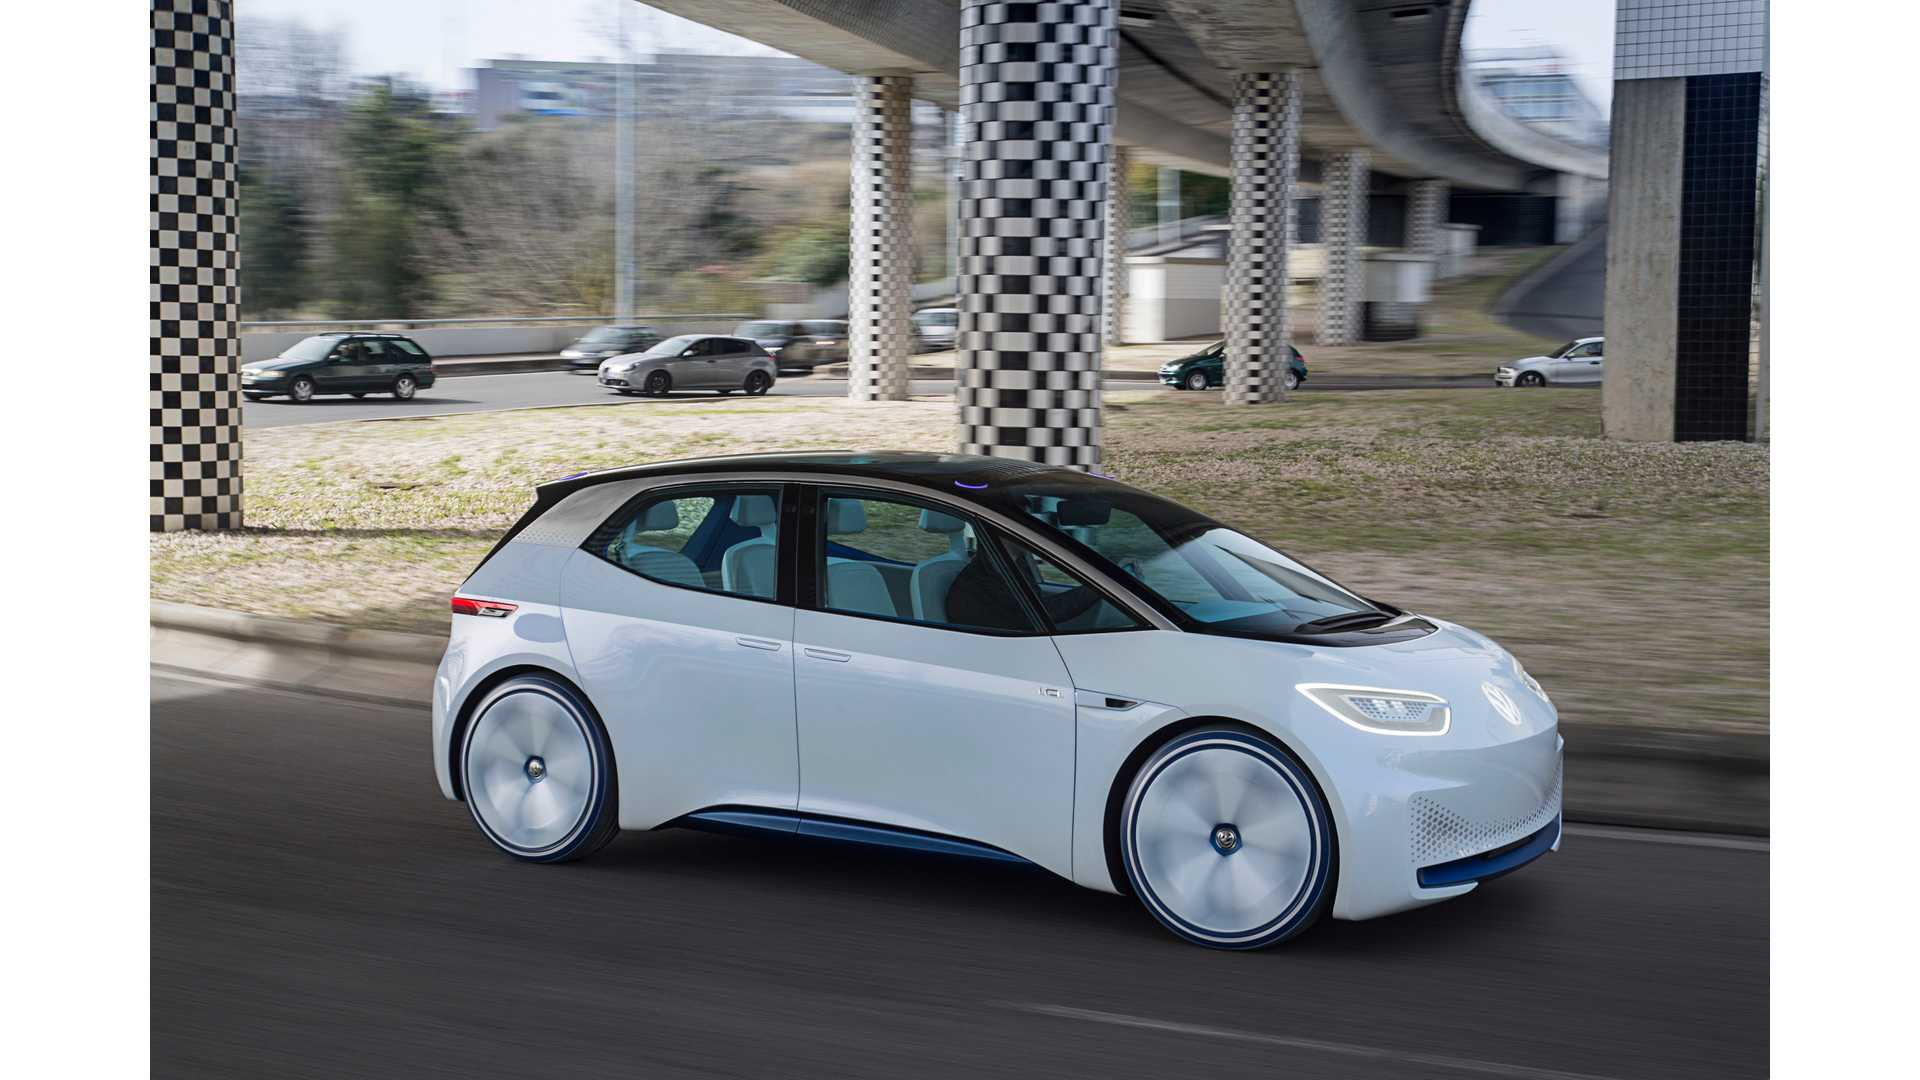 Vw Claims By 2020 Its Electric Cars Will Match Tesla At Half Price